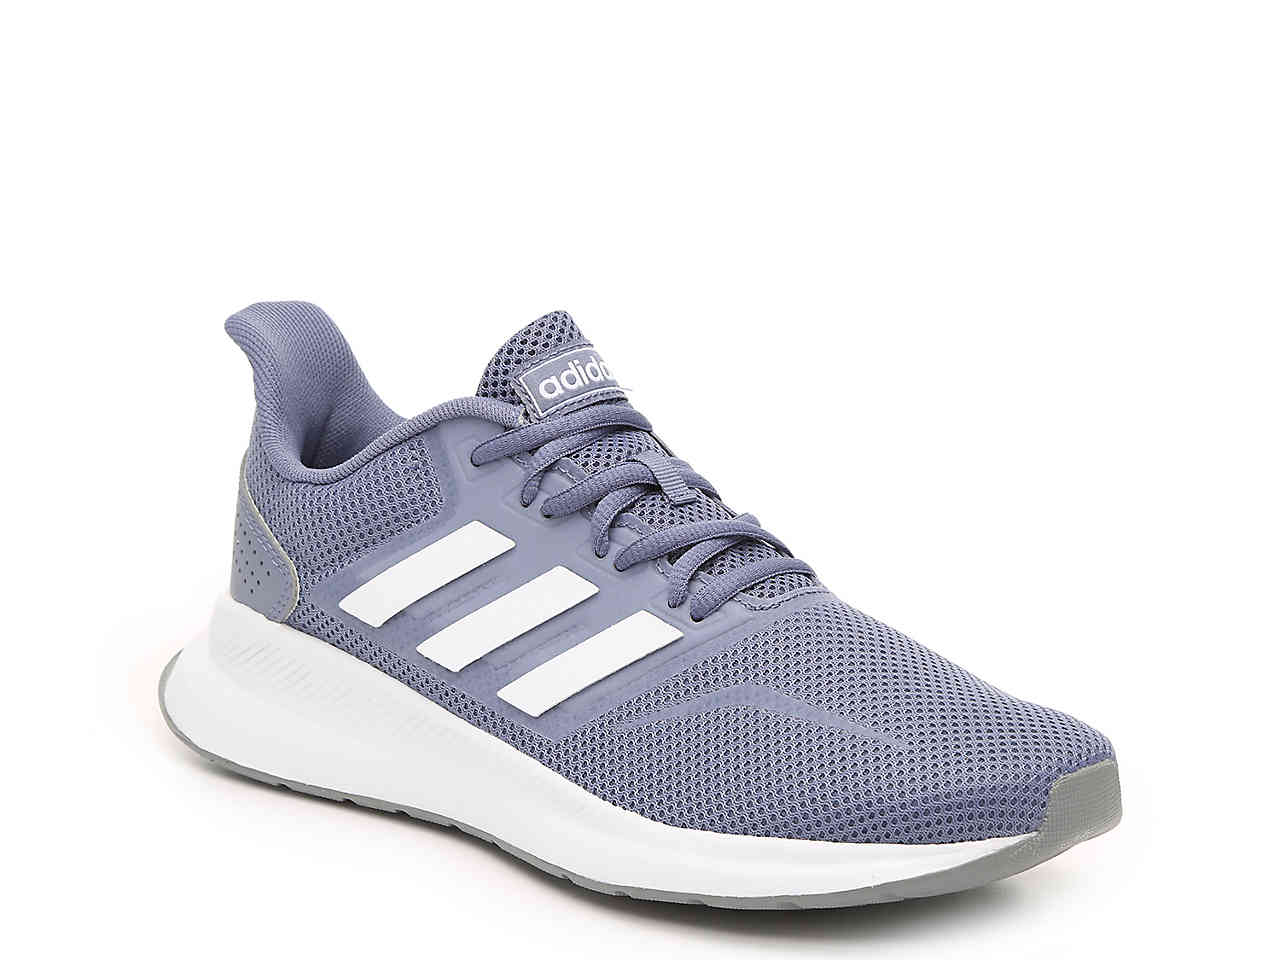 Adidas Running Shoes : Adidas Online Best Price Guarantee